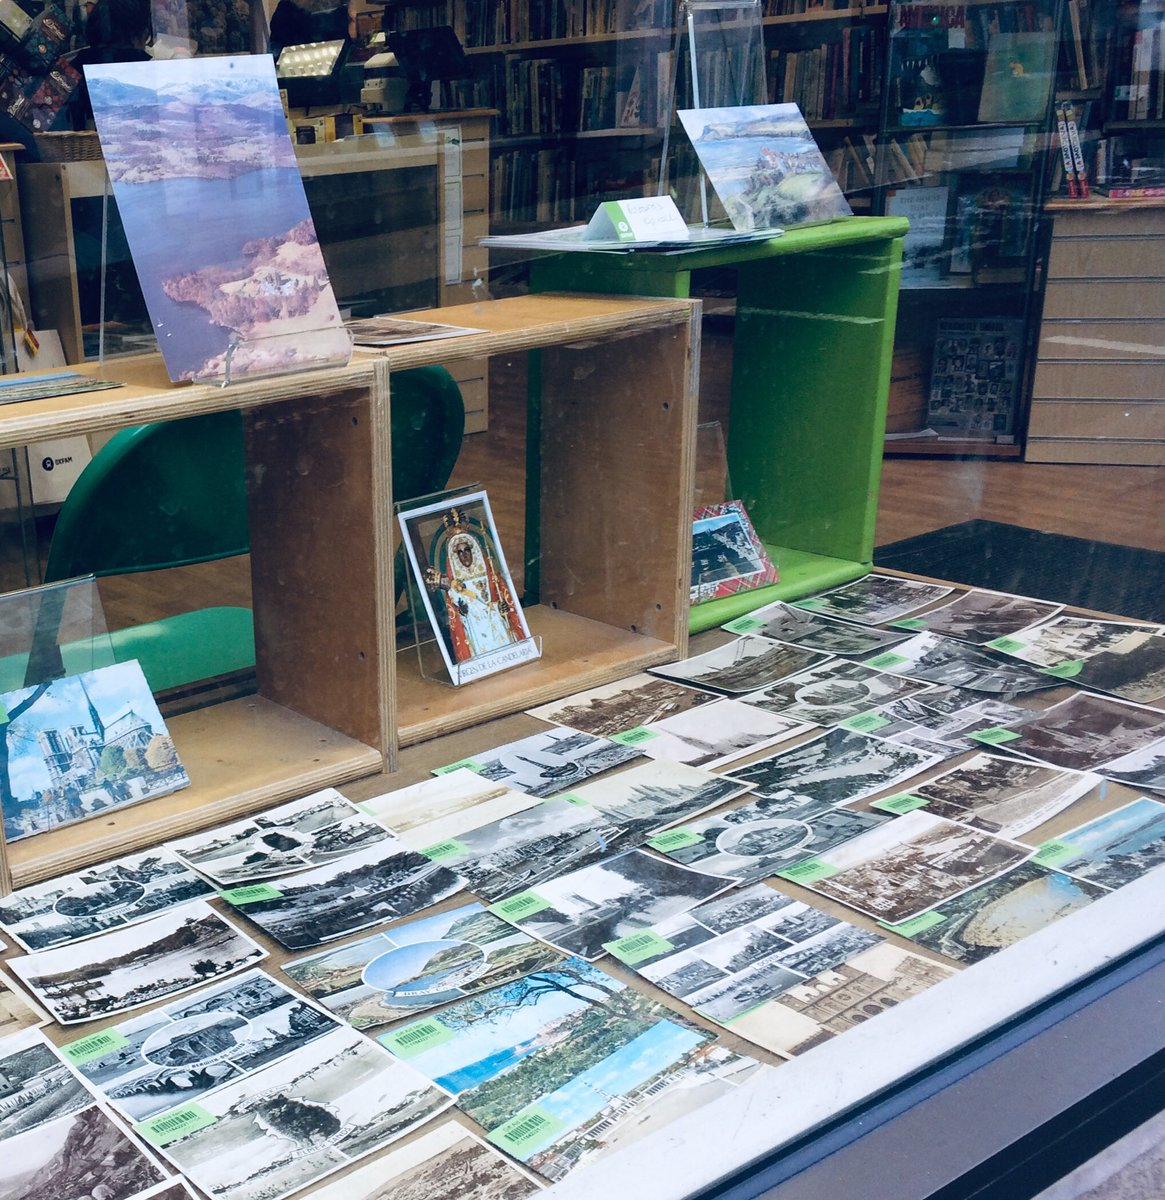 Collecting postcards?..  take a peek at these #Oxfam #Hexham #hobbies pic.twitter.com/xMlAyquFes